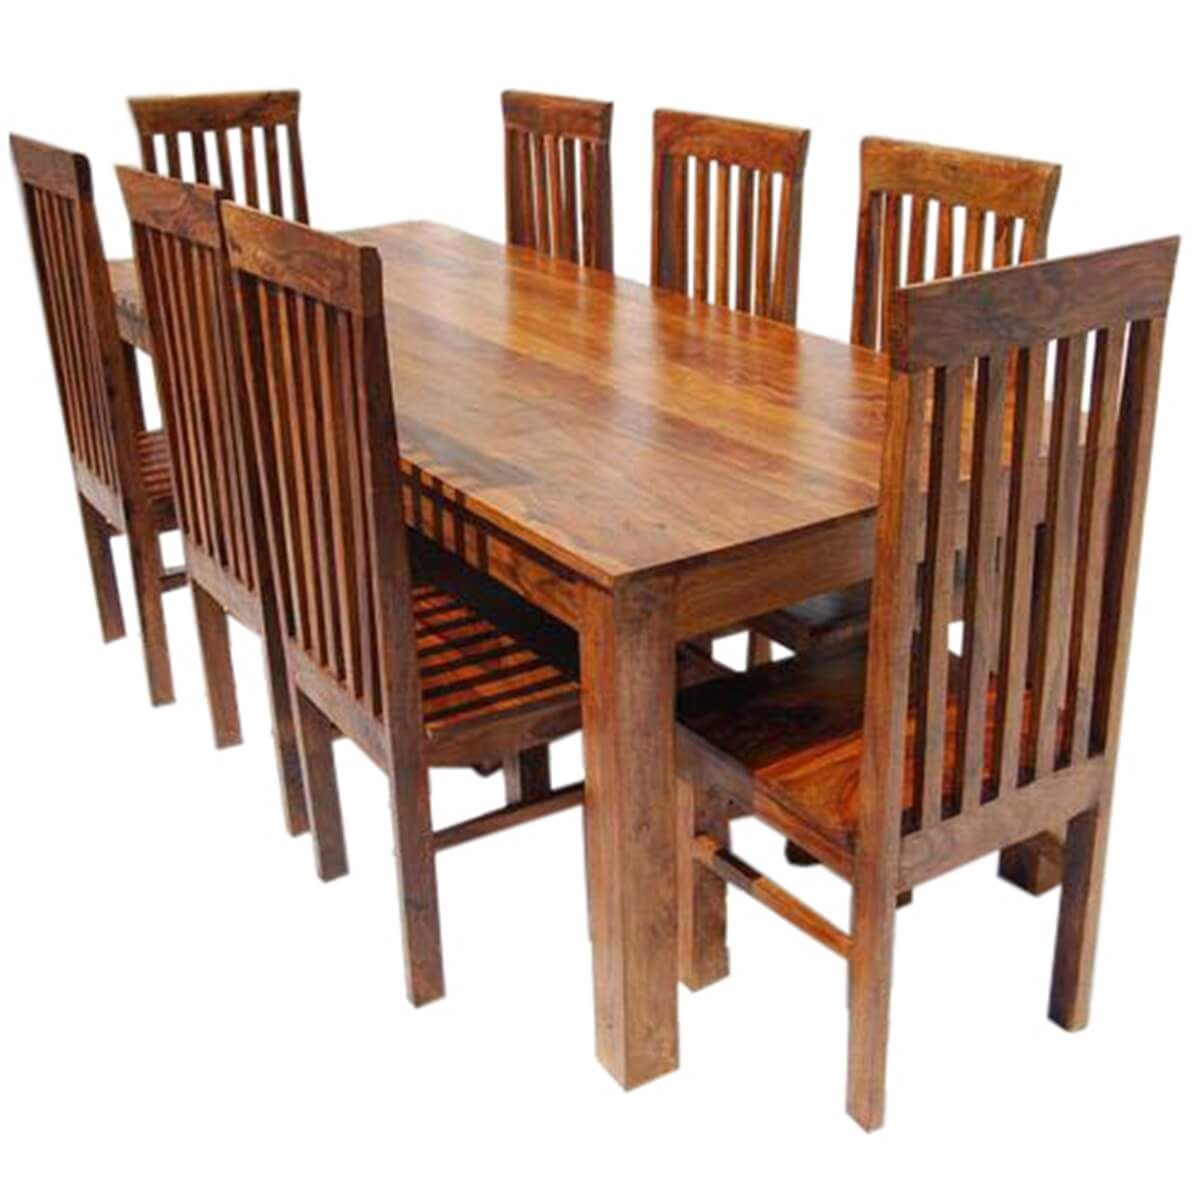 Rustic Kitchen Tables And Chairs: Rustic 9 Piece Dining Table And 8 Chairs Set Solid Wood